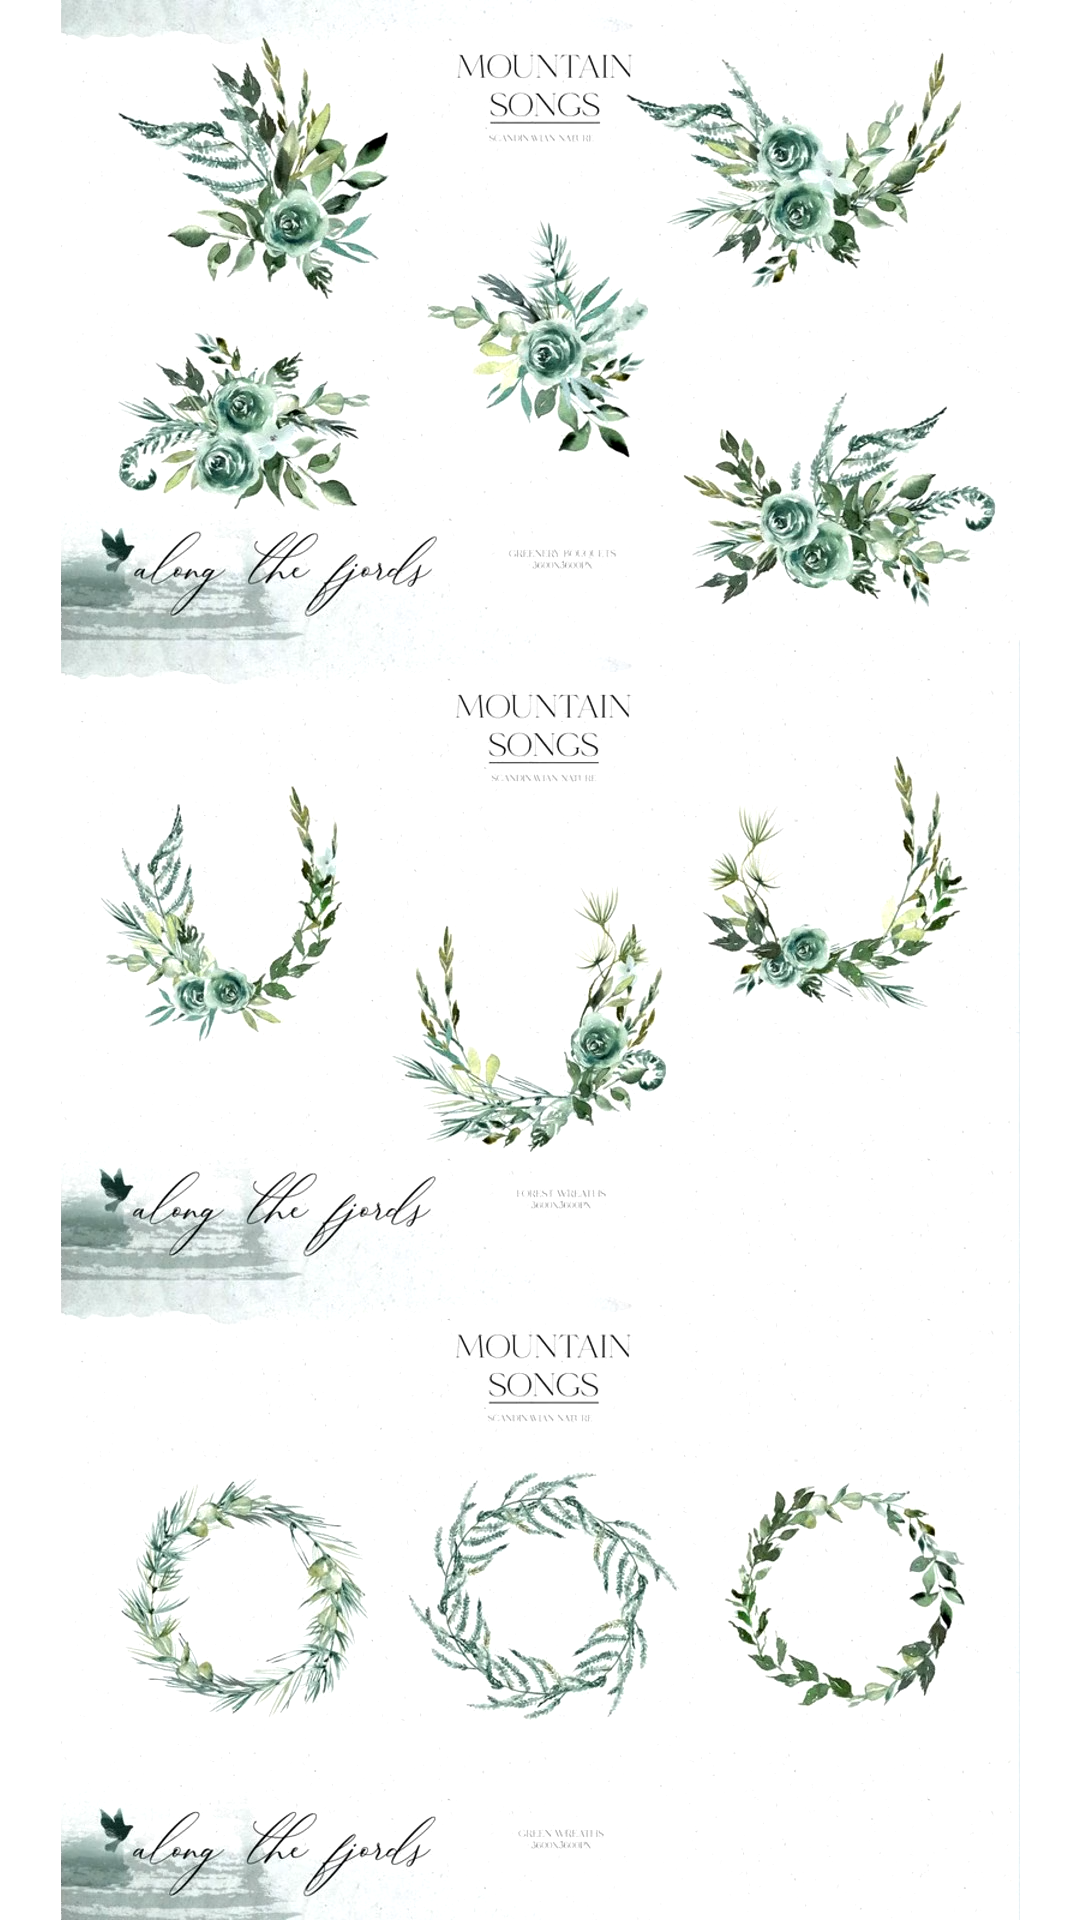 160 greenery mountains and forest illustrations. S